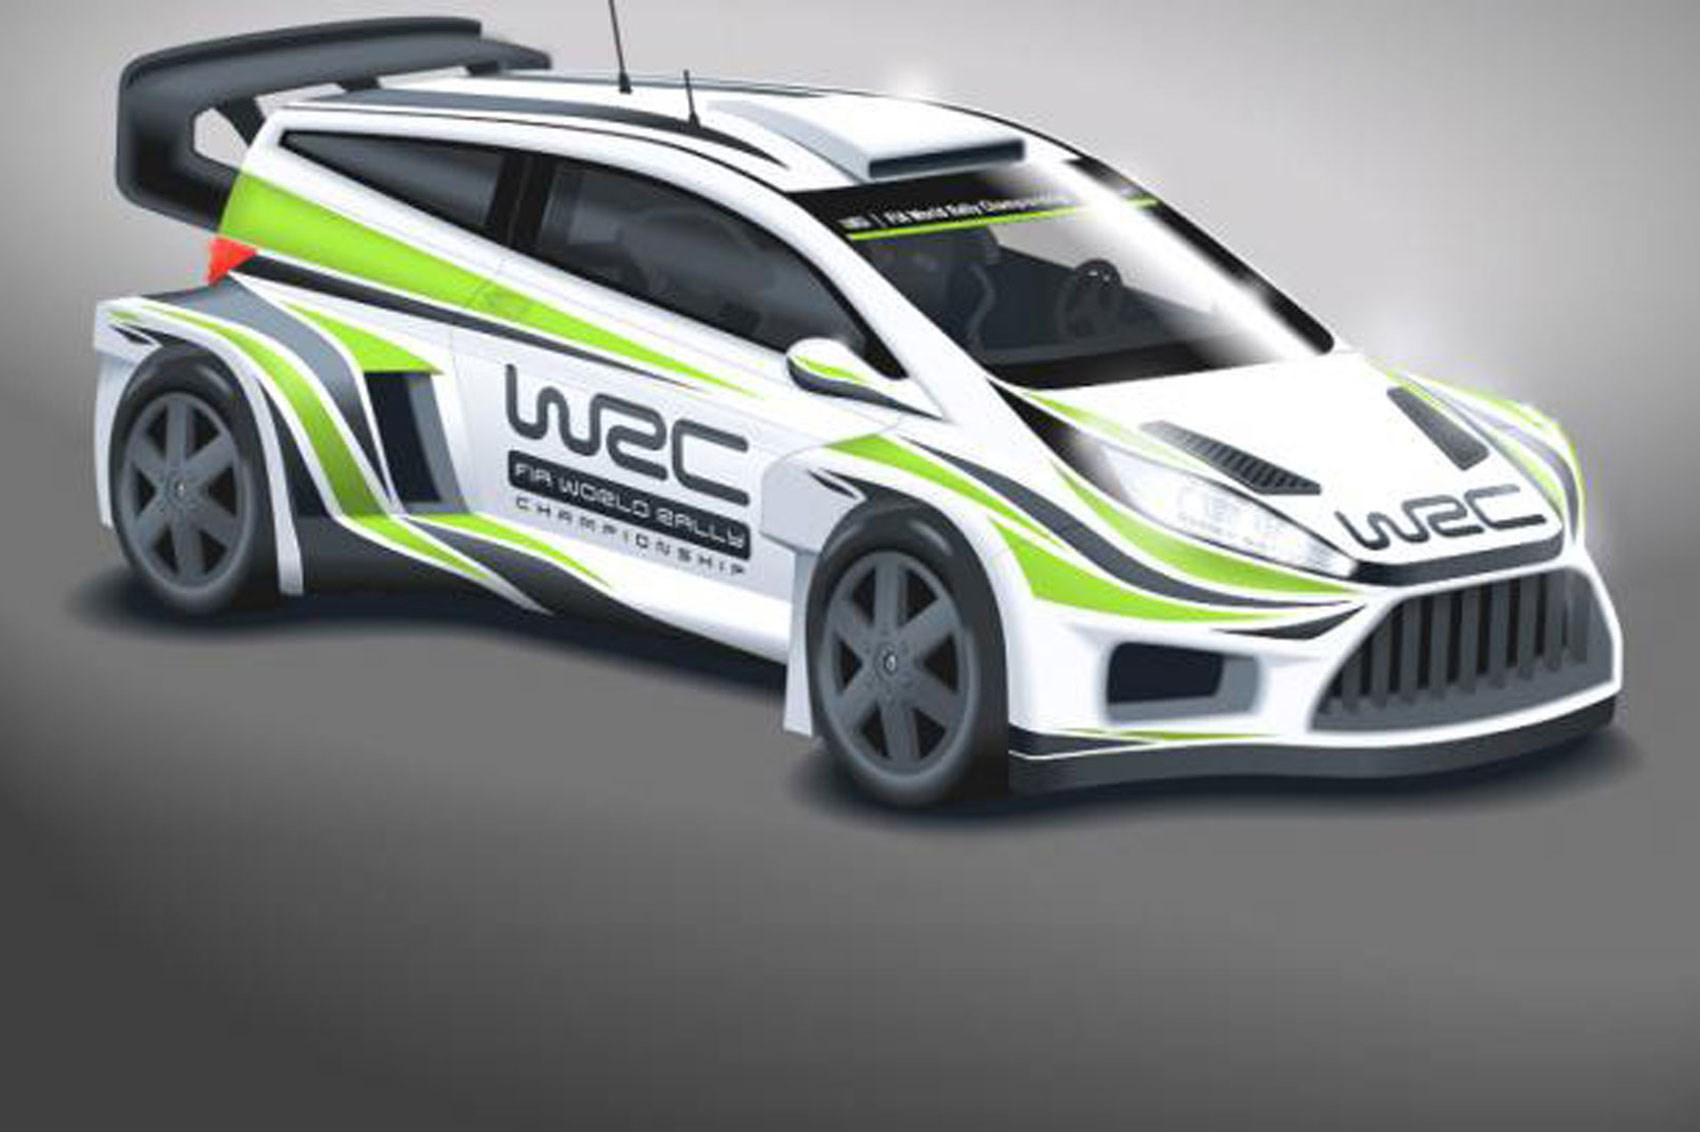 Ultrablogus  Terrific Wild New Look For Wrc Cars In  By Car Magazine With Entrancing Wrc Cars Will Get Wider Bodies Bigger Wings And More Power For  With Endearing  Mustang Interior Also  Corvette Interior In Addition Car Interior Images And Jeep Wagoneer Interior As Well As Mitsubishi Gt Interior Parts Additionally Gmc Terrain Interior From Carmagazinecouk With Ultrablogus  Entrancing Wild New Look For Wrc Cars In  By Car Magazine With Endearing Wrc Cars Will Get Wider Bodies Bigger Wings And More Power For  And Terrific  Mustang Interior Also  Corvette Interior In Addition Car Interior Images From Carmagazinecouk